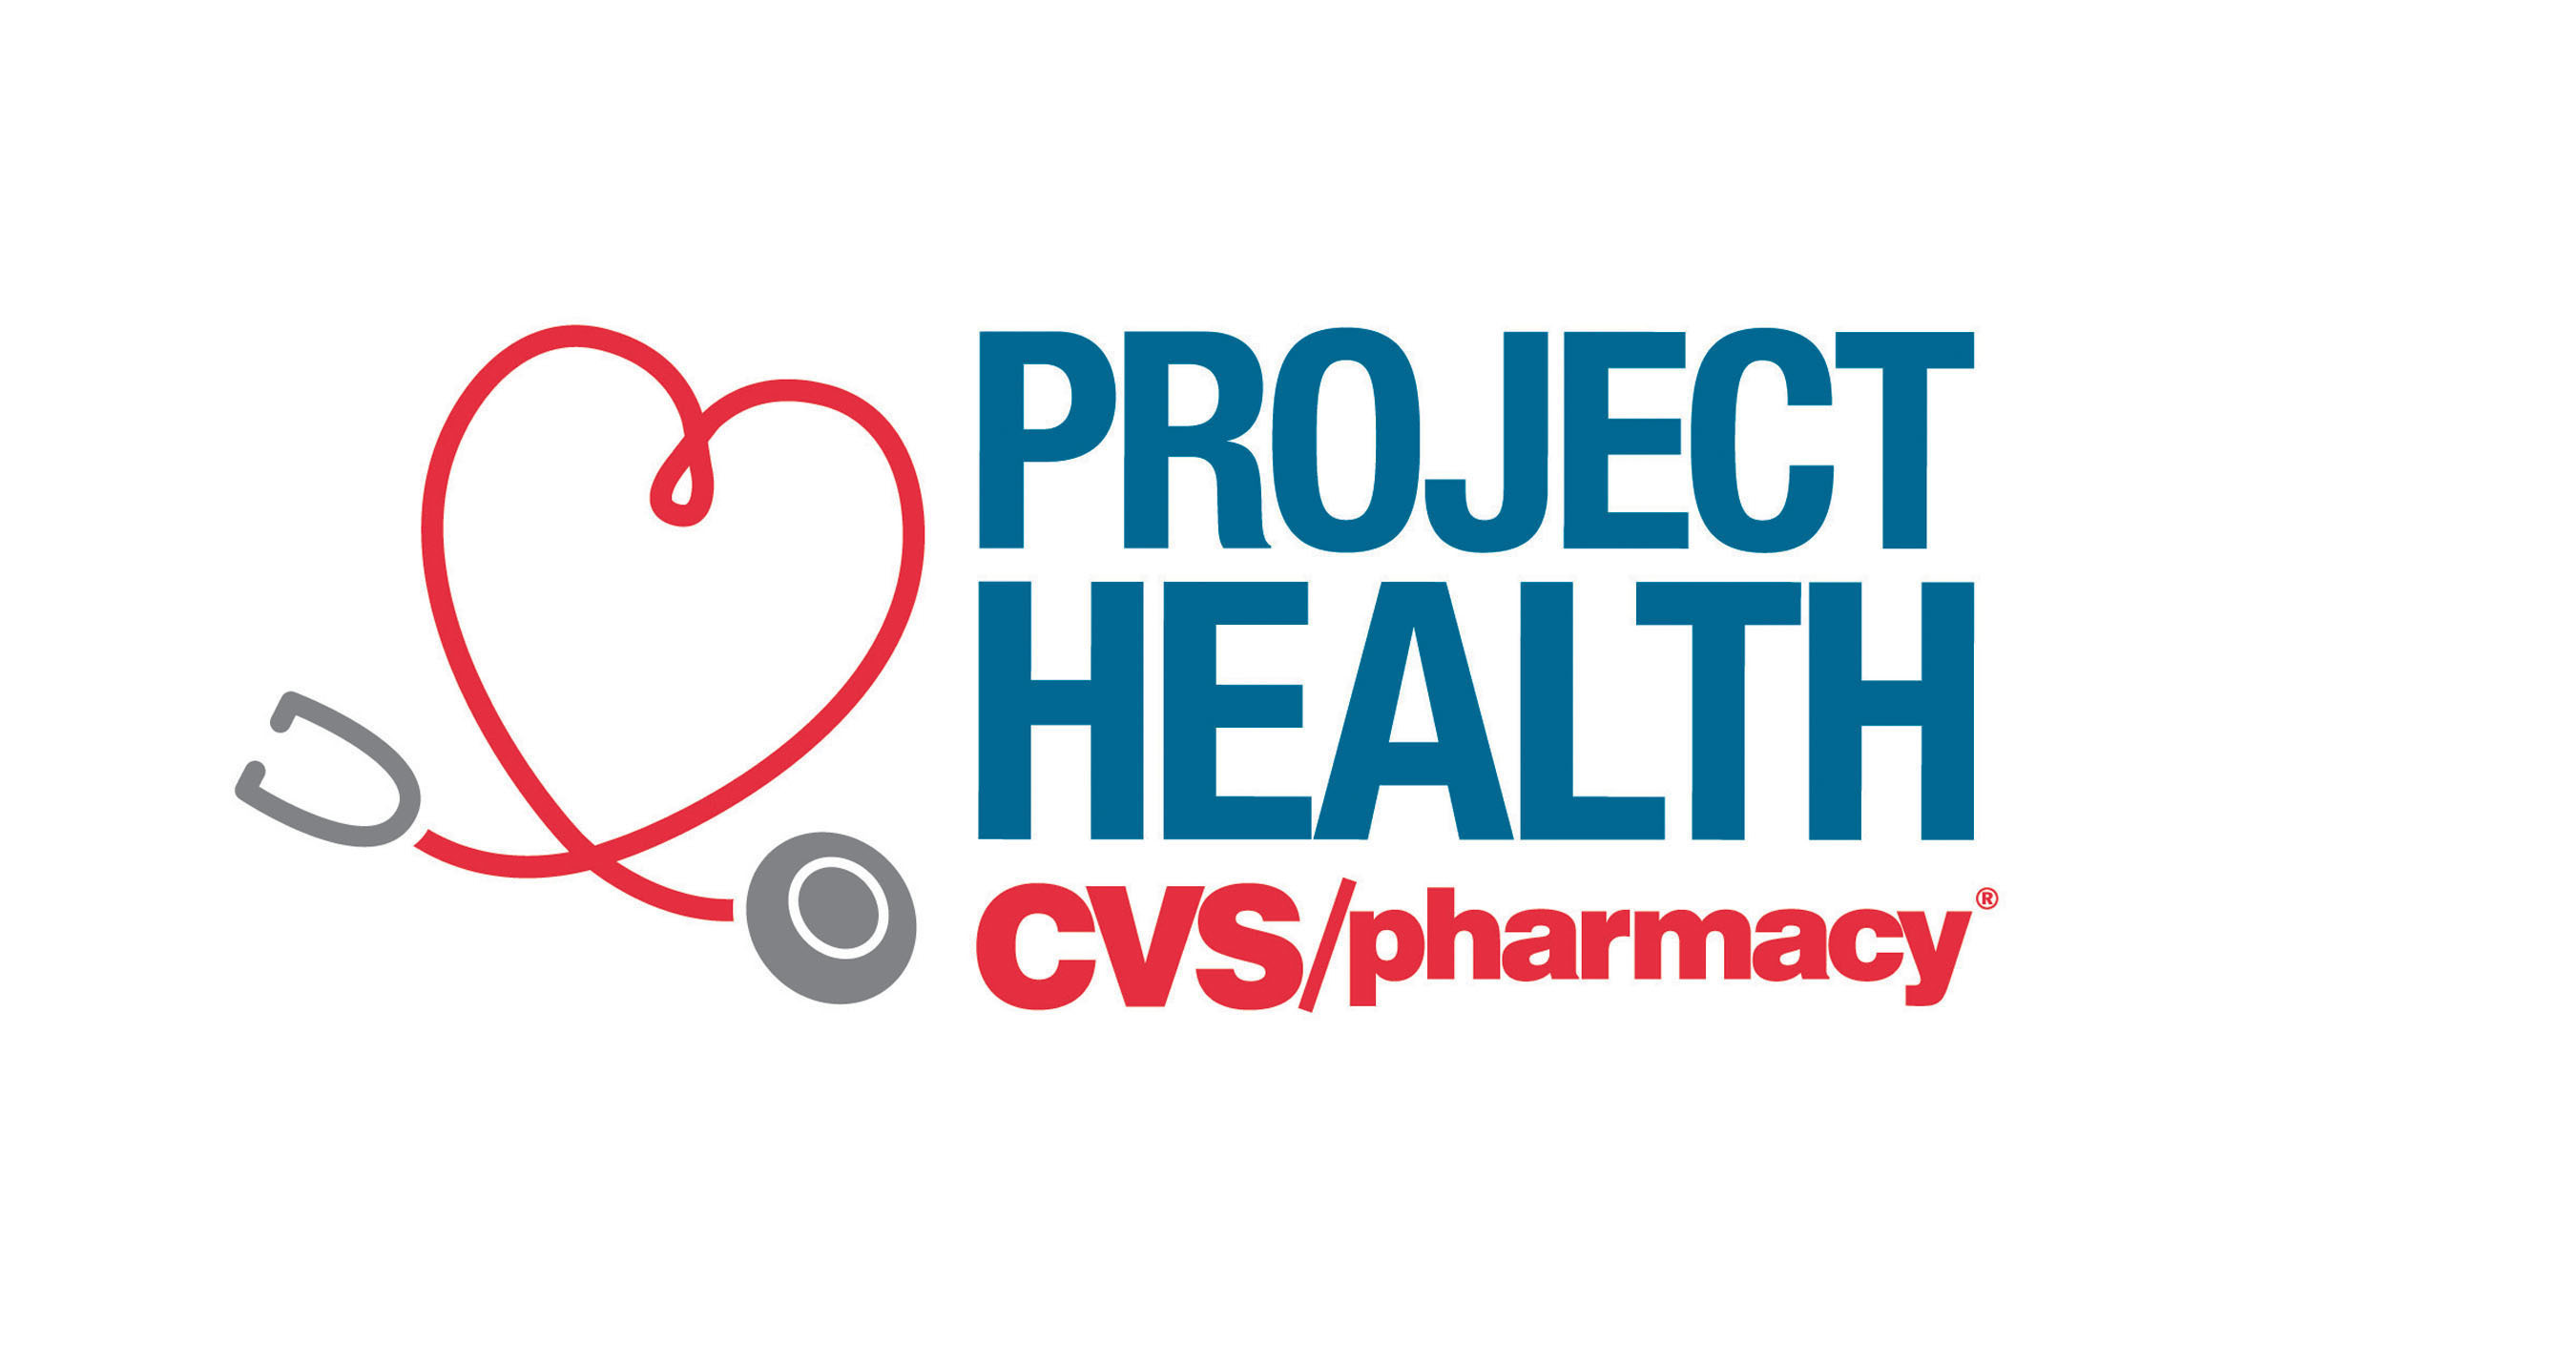 cvs  pharmacy u2019s  u201cproject health u201d bringing free health screenings during the month of august